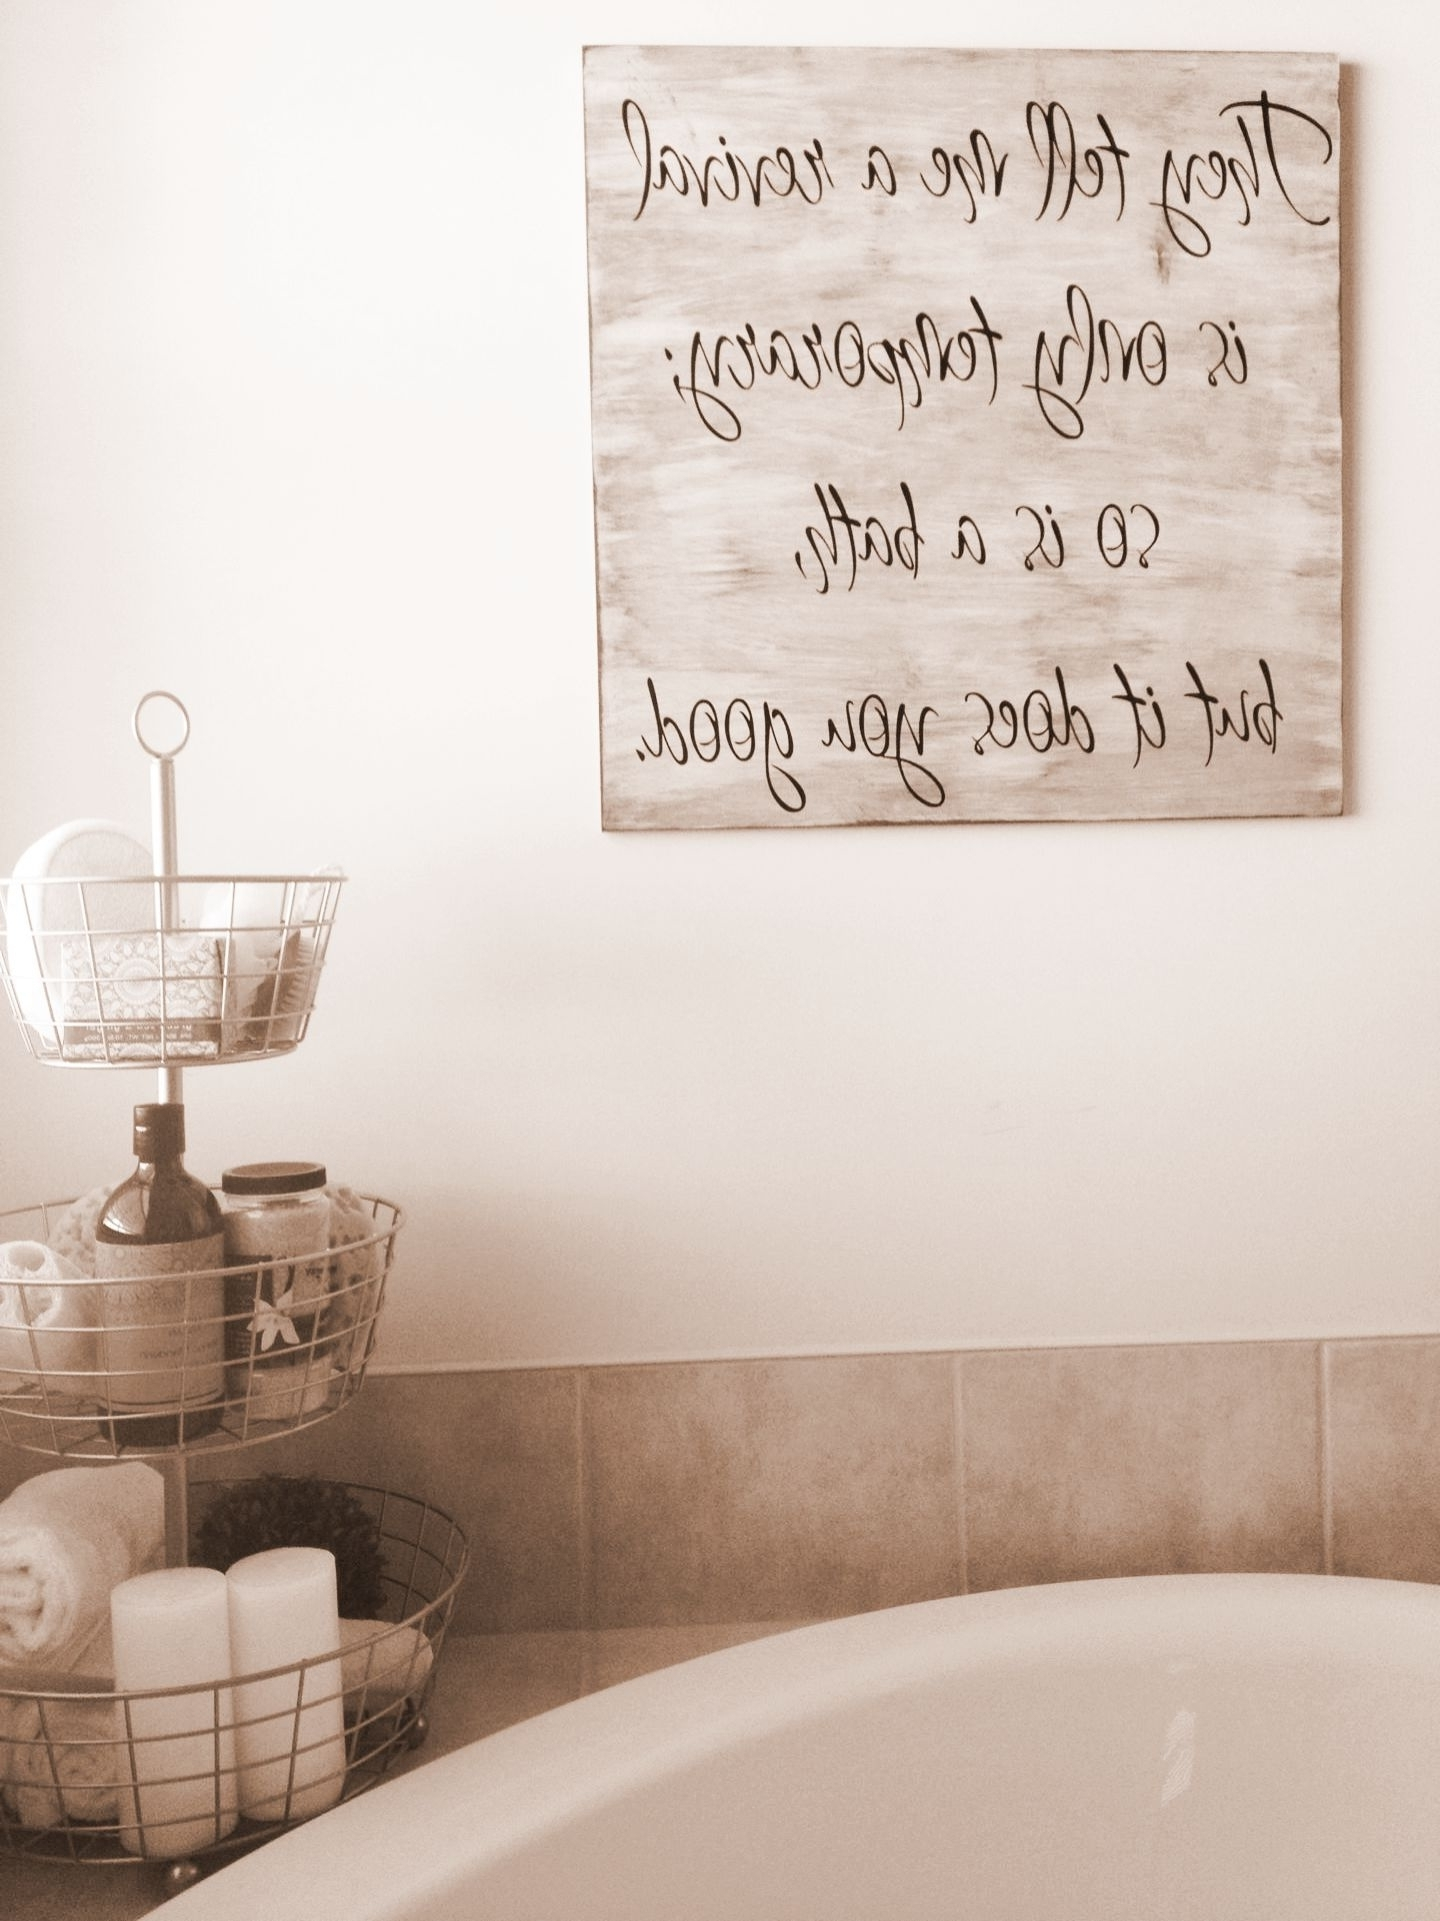 Recent Wall Art For Bathroom Throughout New Bathroom Wall Art Ideas Uk (Gallery 9 of 20)